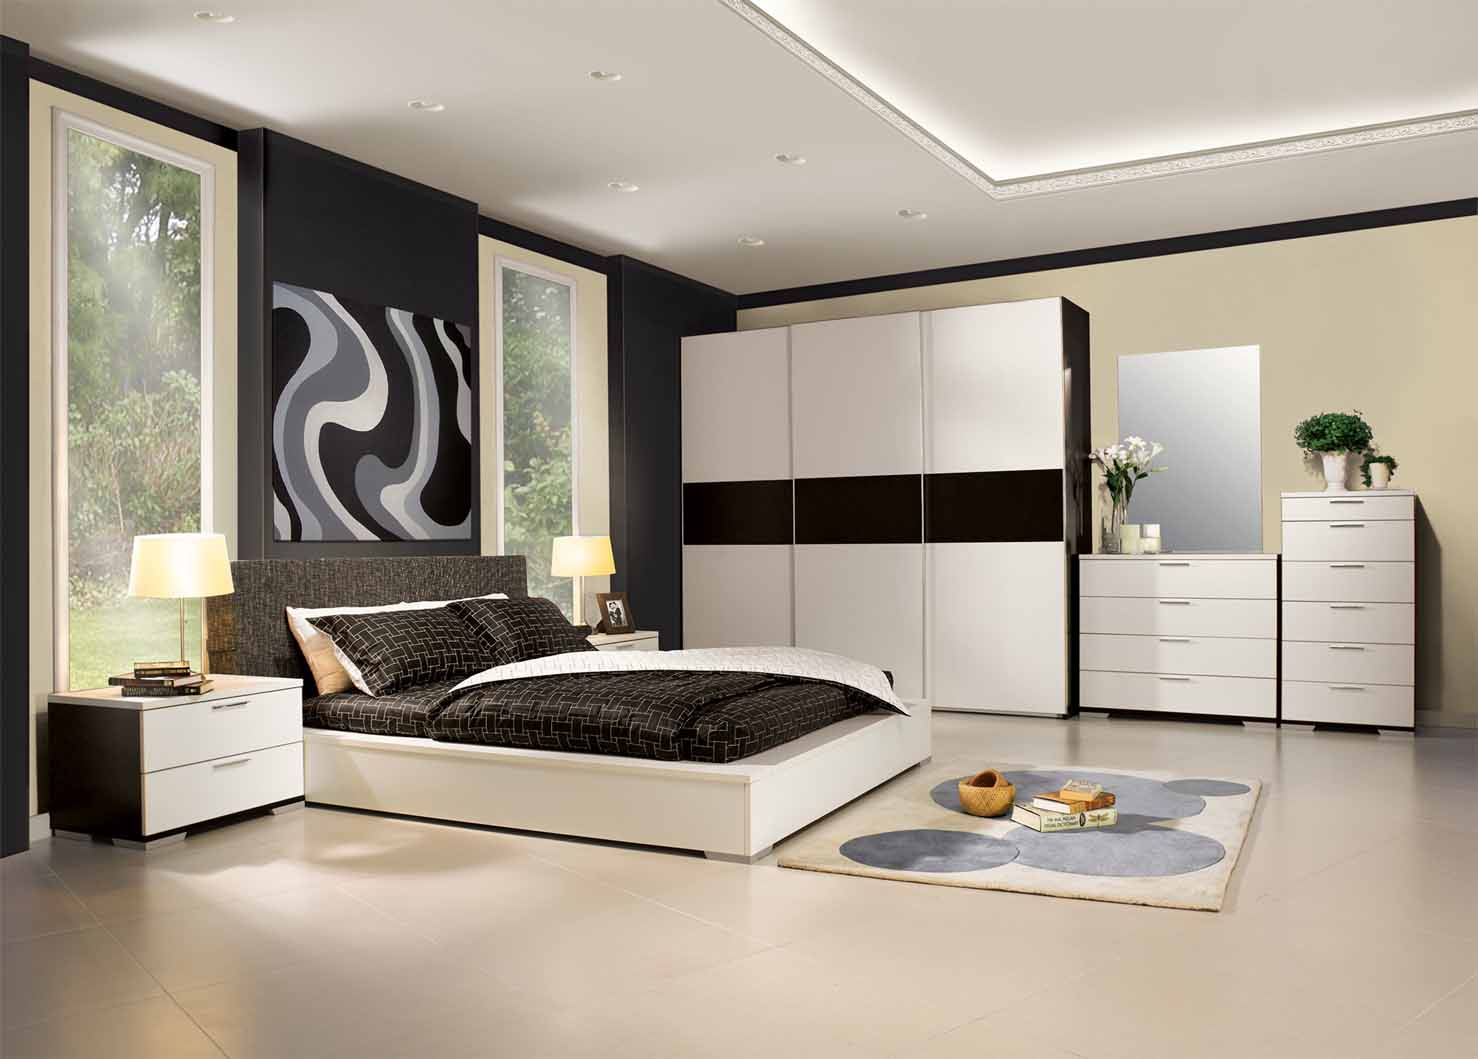 Modern black bedroom furniture popular interior house ideas for Bedroom furniture interior design